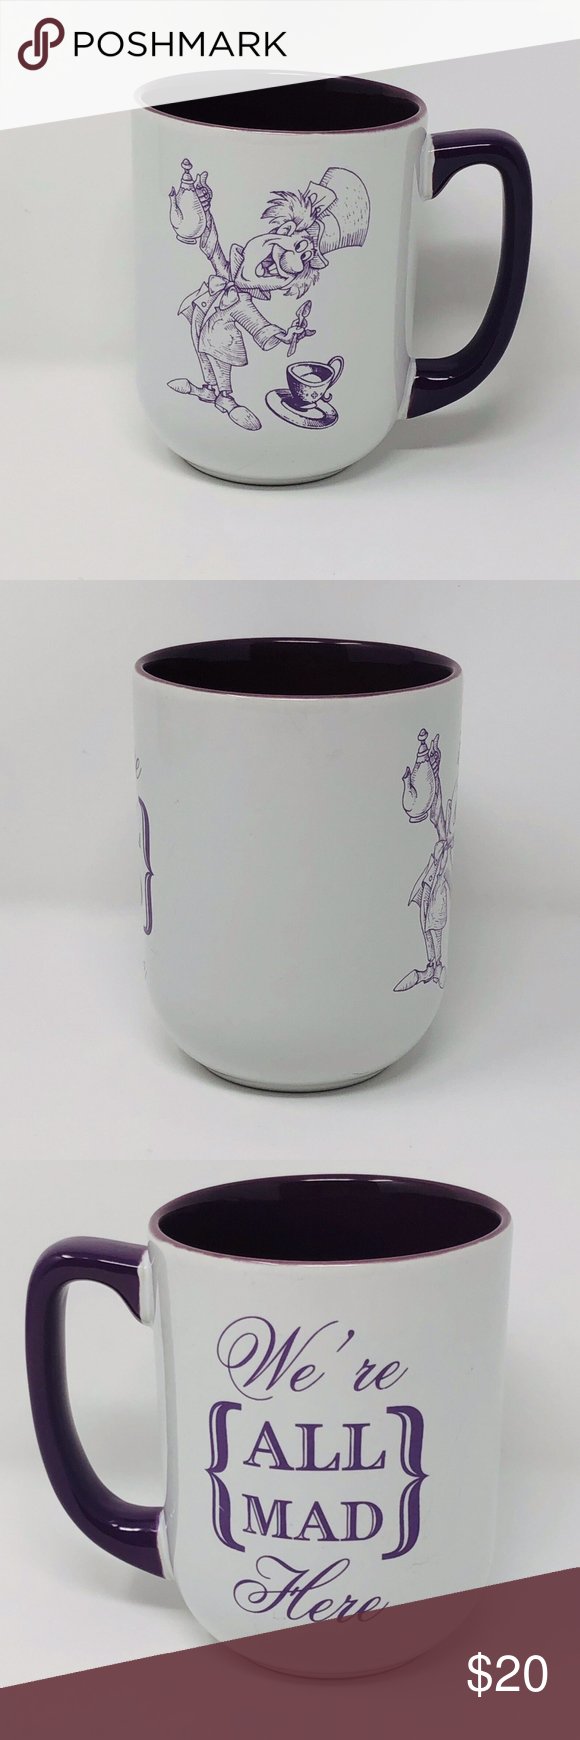 WE'RE ALL MAD HERE Mad Hatter Coffee Mug Disney WE'RE ALL MAD HERE Mad Hatter Coffee Mug Alice Wonderland Tea Cup  Description: 14 fl. oz.  Condition: Pre-owned with no obvious flaws.  ss1-e233 0719 Disney Dining Dinnerware #disneycoffeemugs